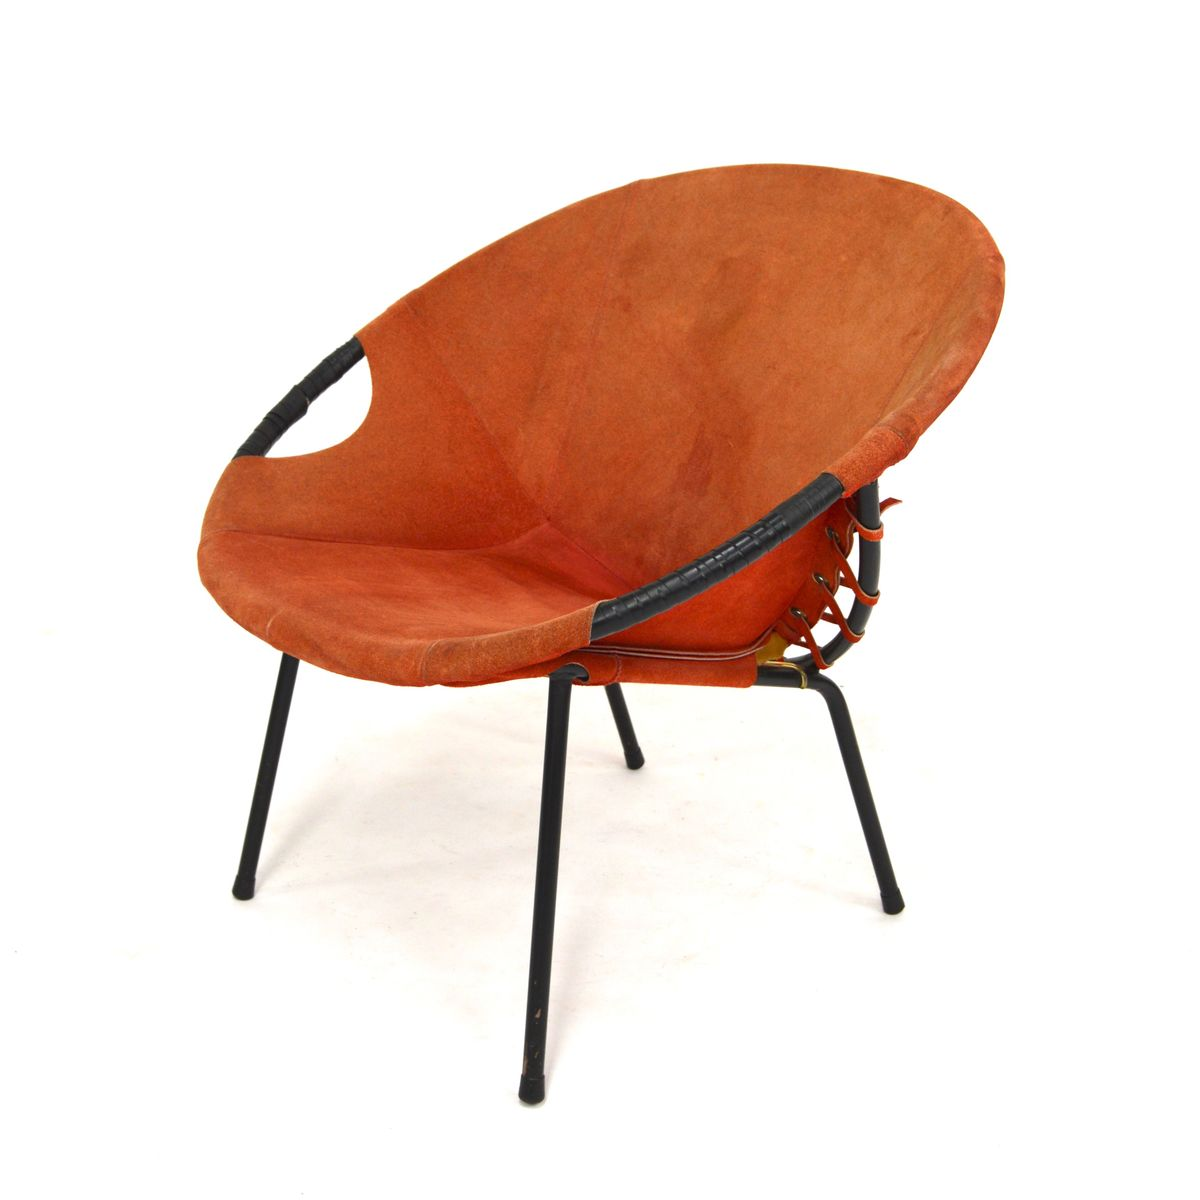 co chairs circle parson walmart vintage chair from lusch and for sale at pamono